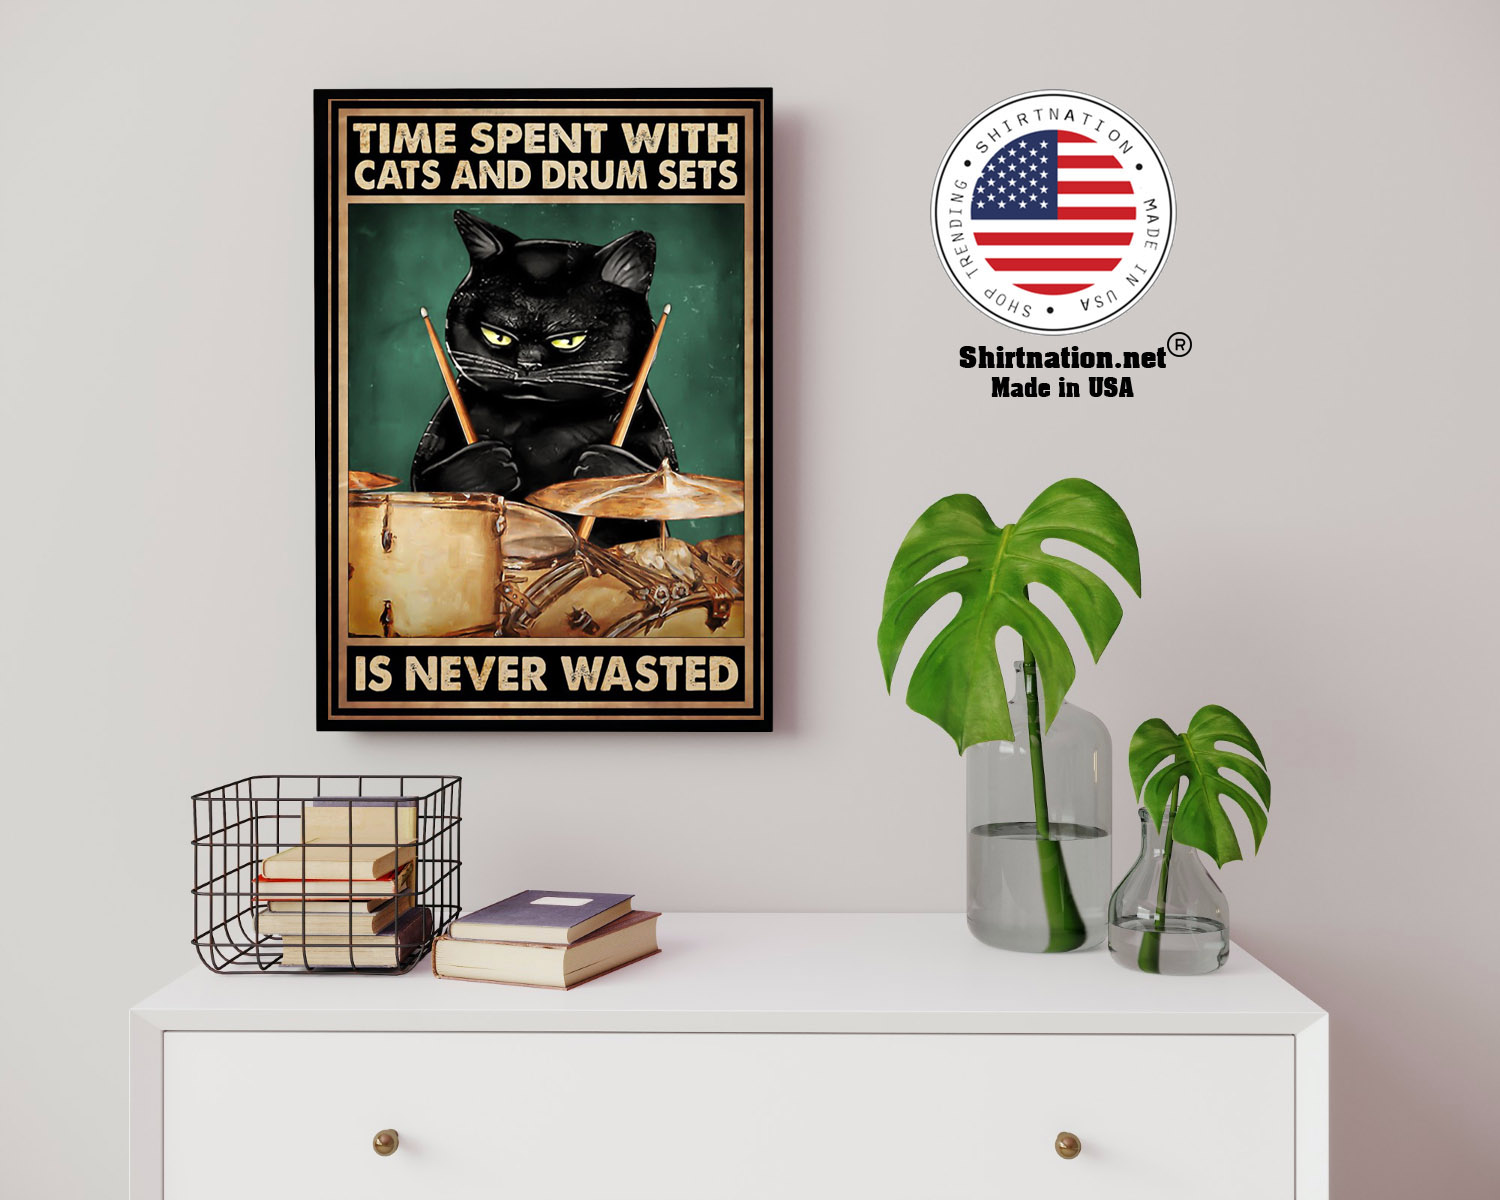 Time spent with cats and drum sets is never wasted poster 14